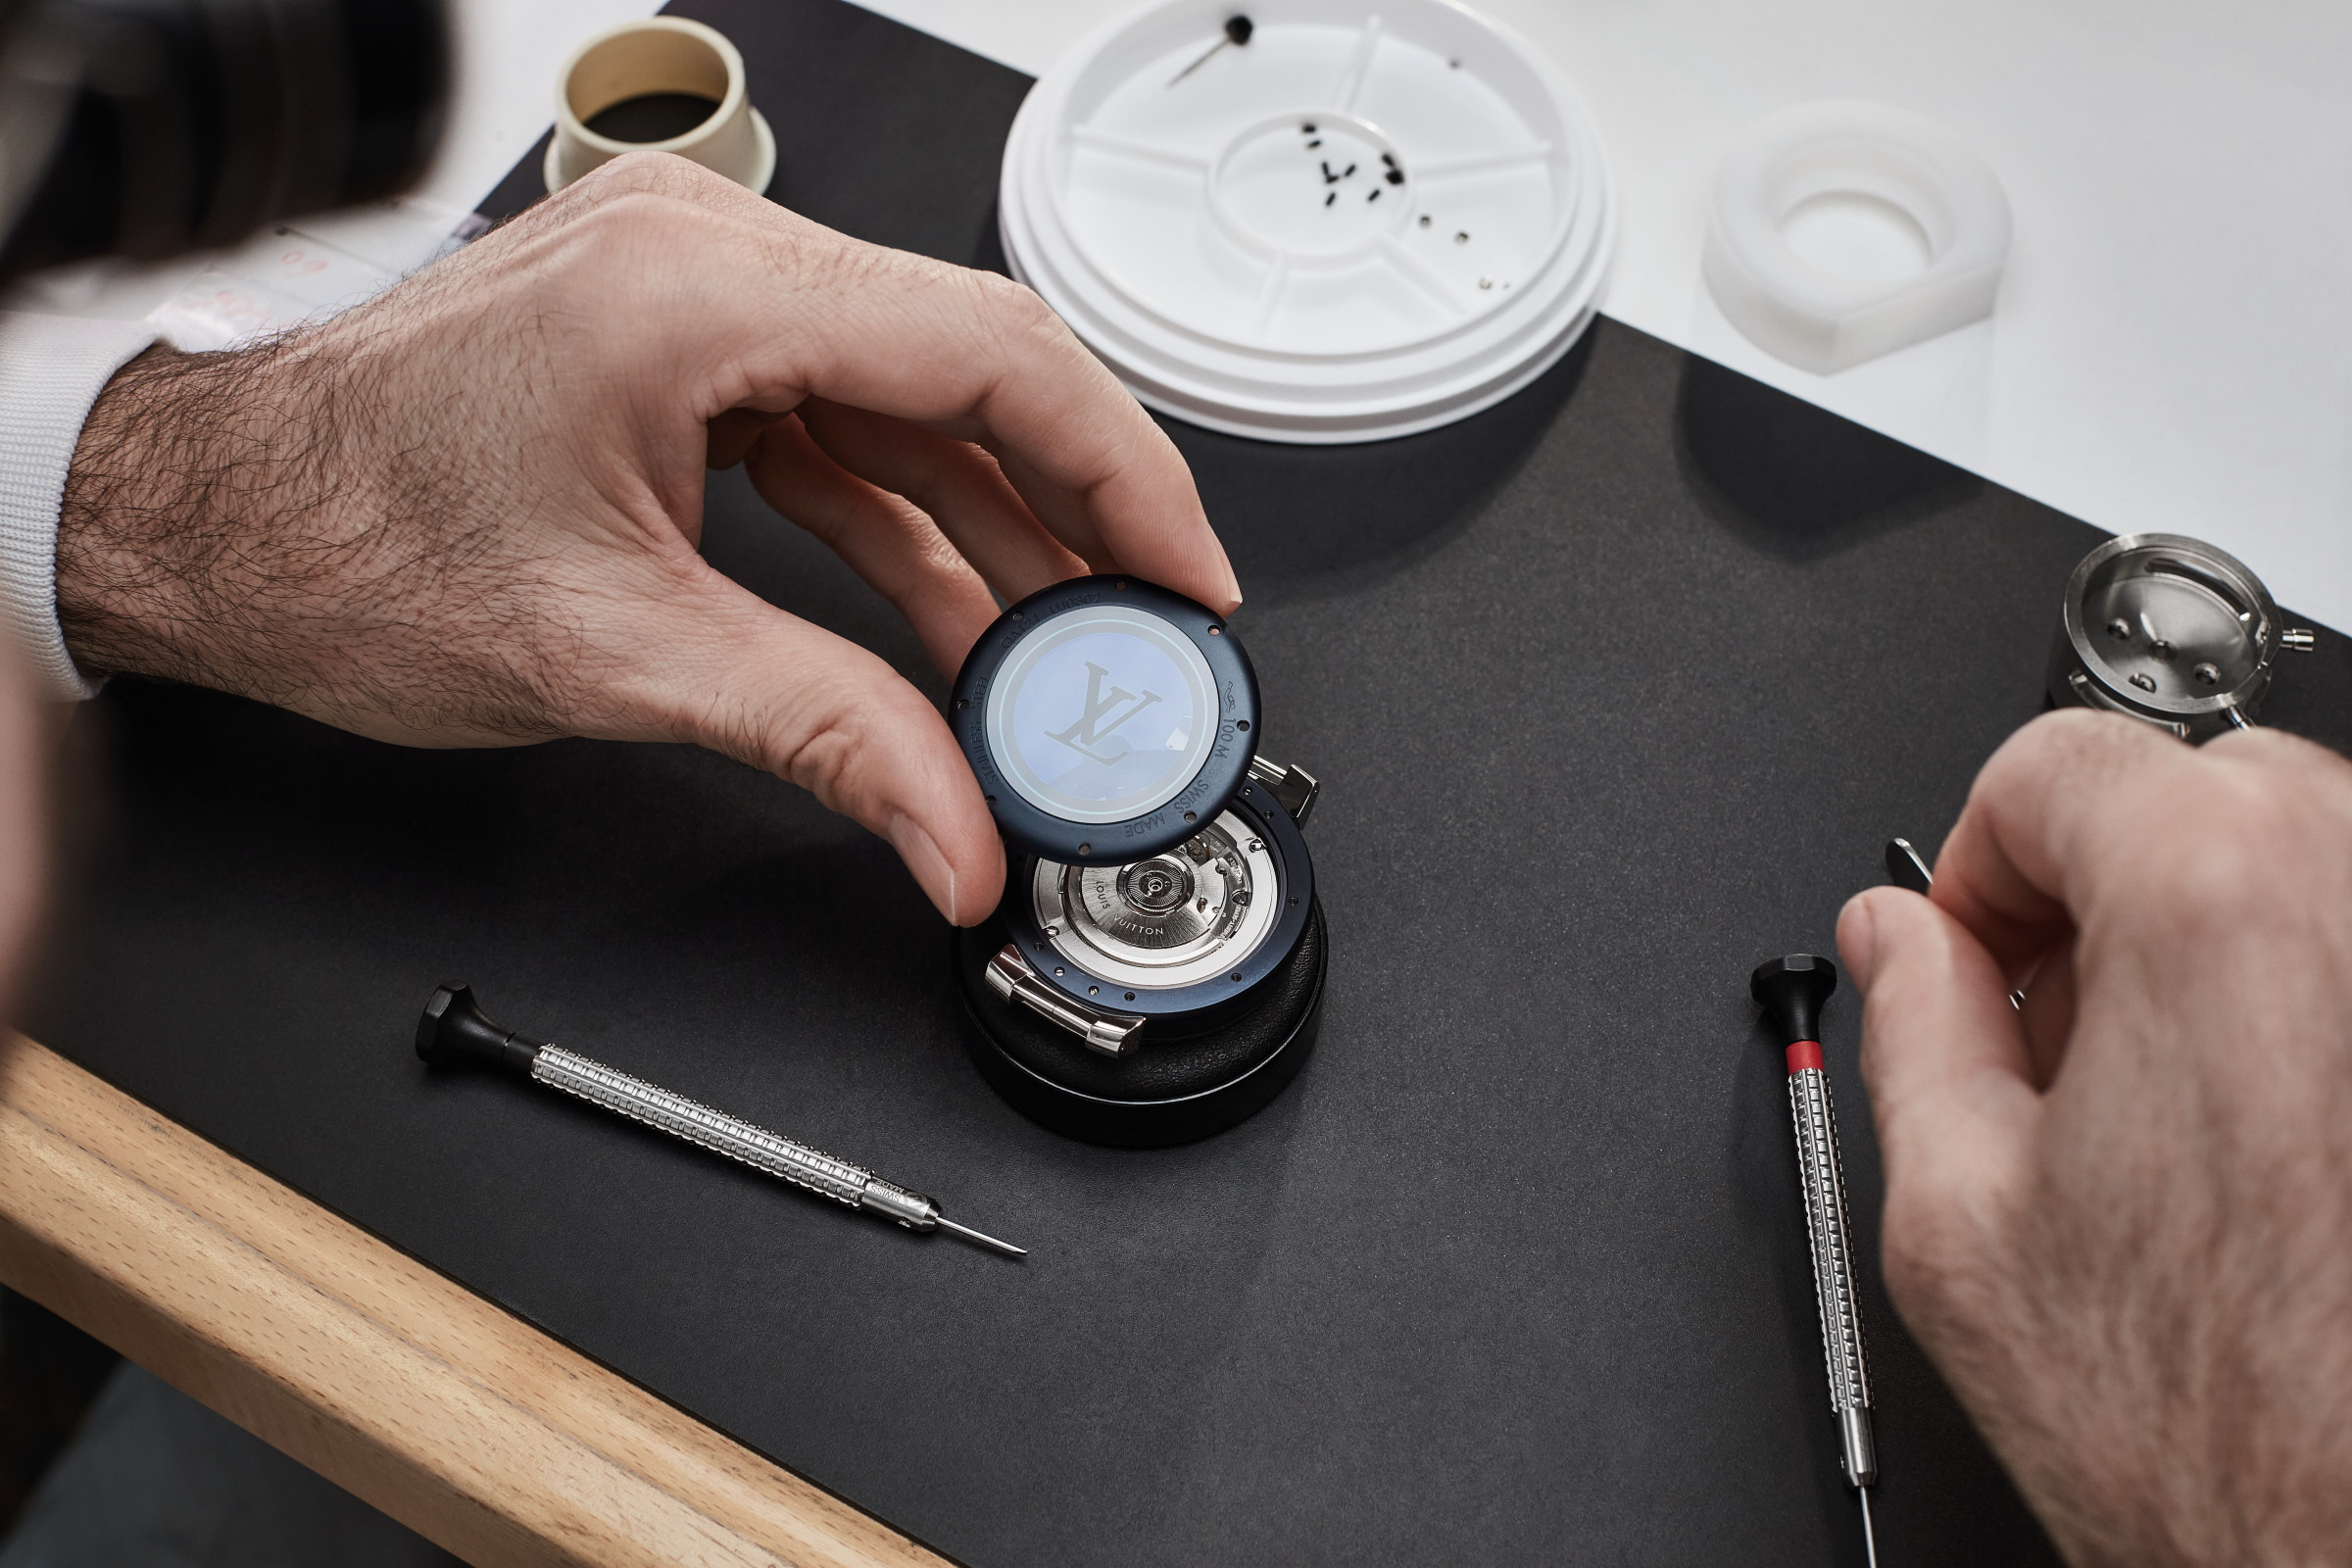 Louis Vuitton Carves Its Own Path In Watchmaking With The Tambour Street Diver